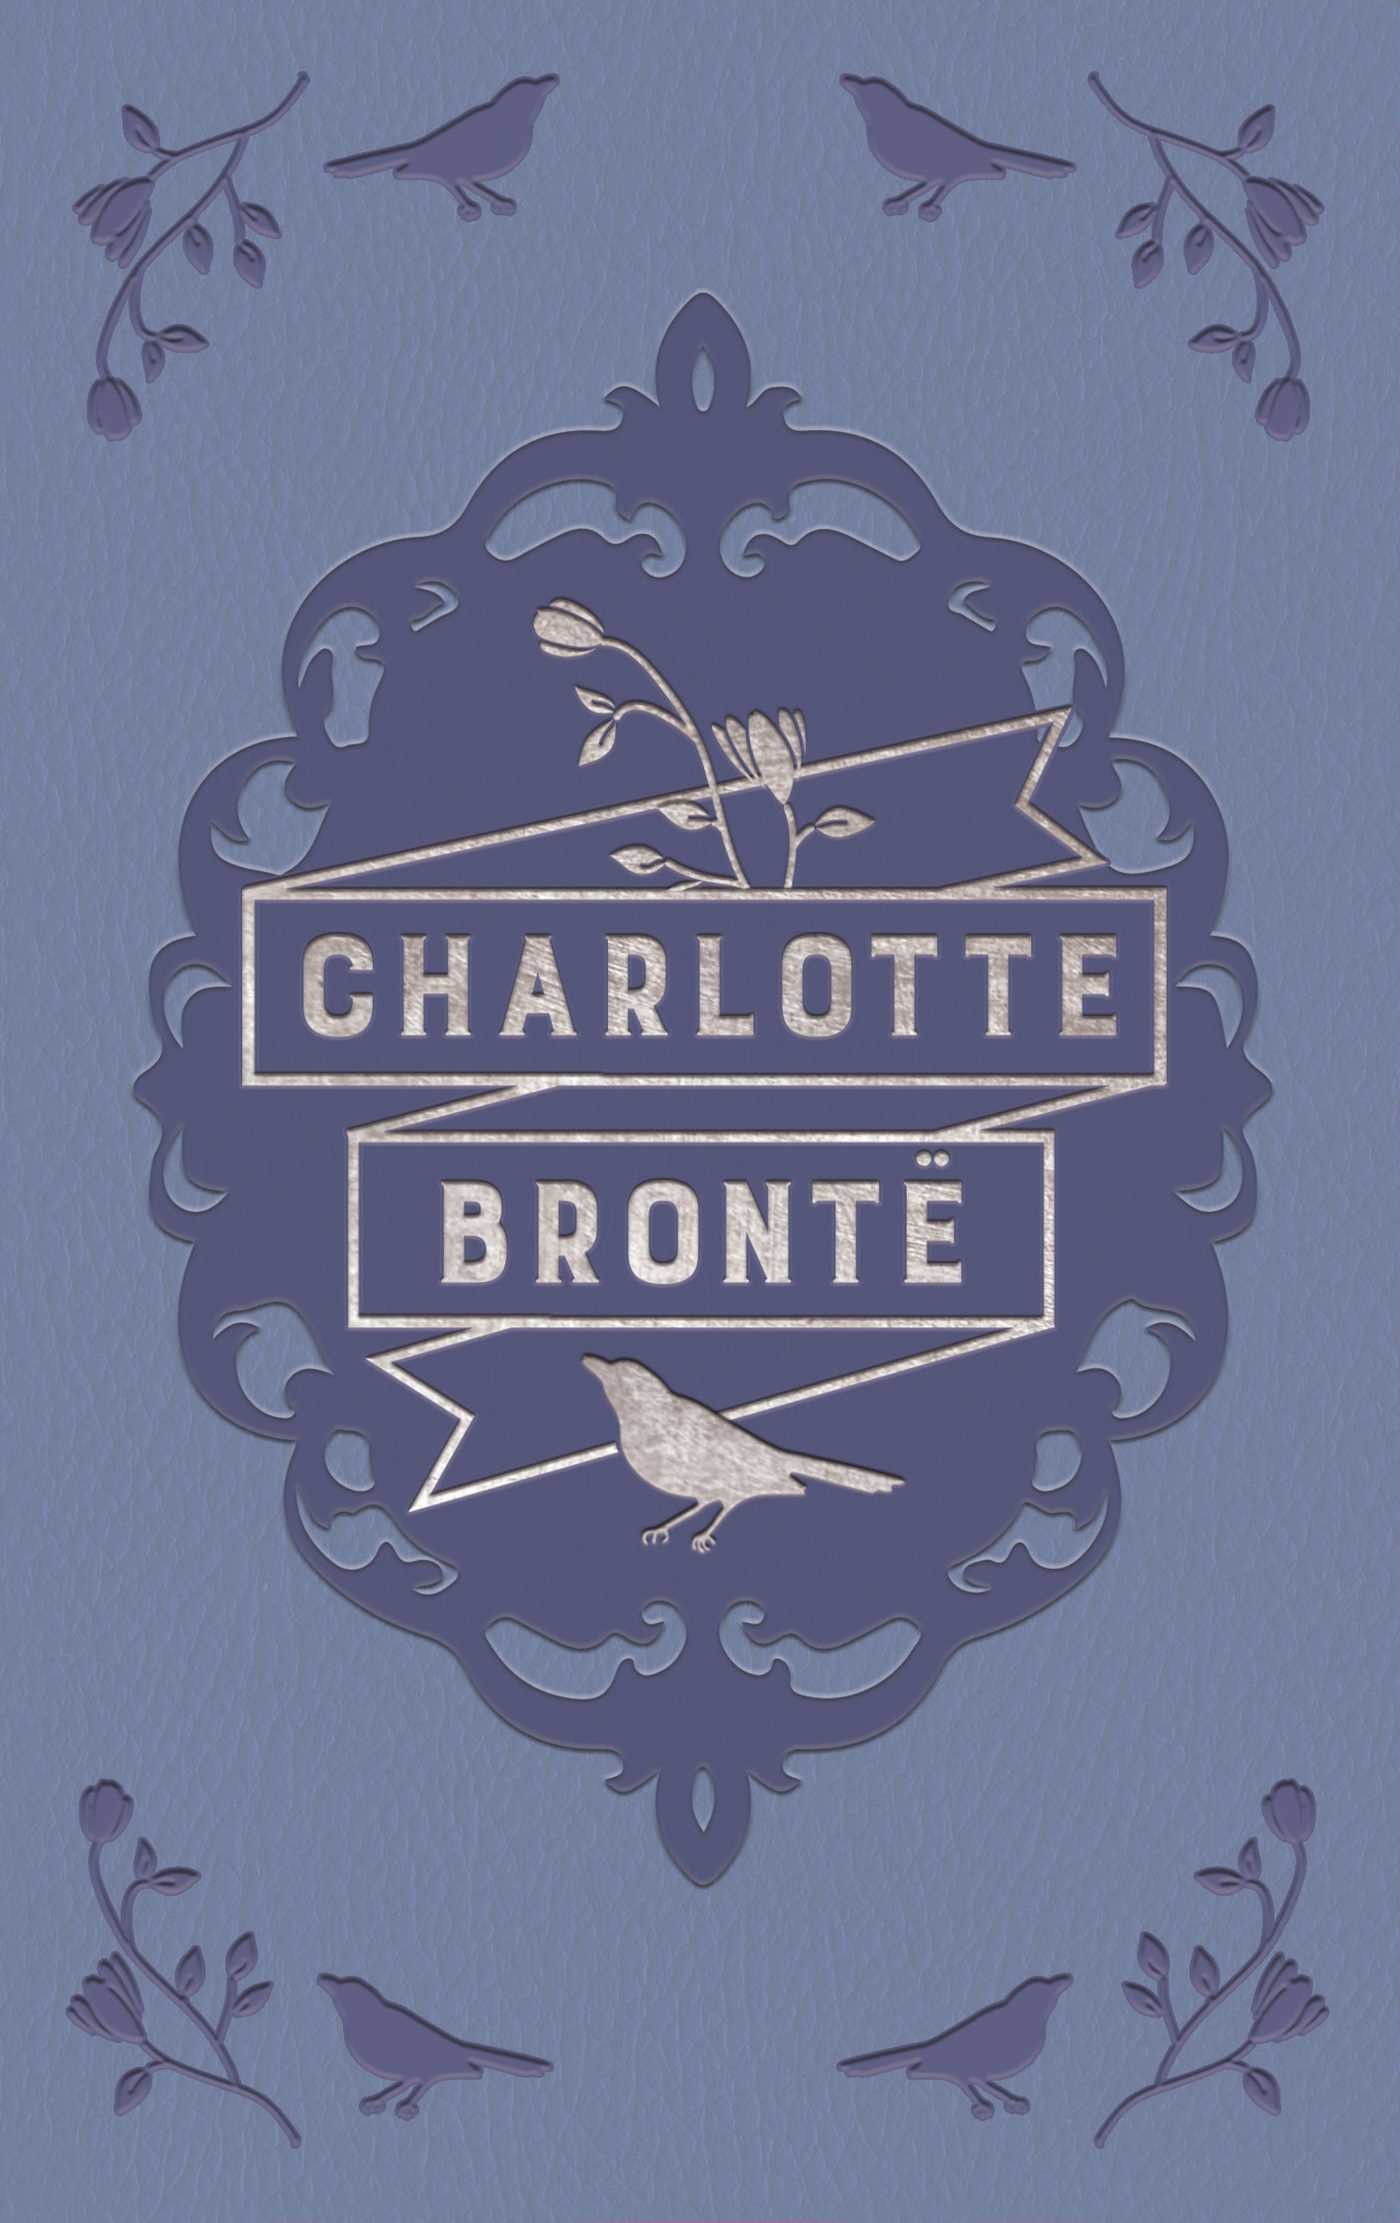 Charlotte bronte deluxe note card set with keepsake book box 9781683833109.in02